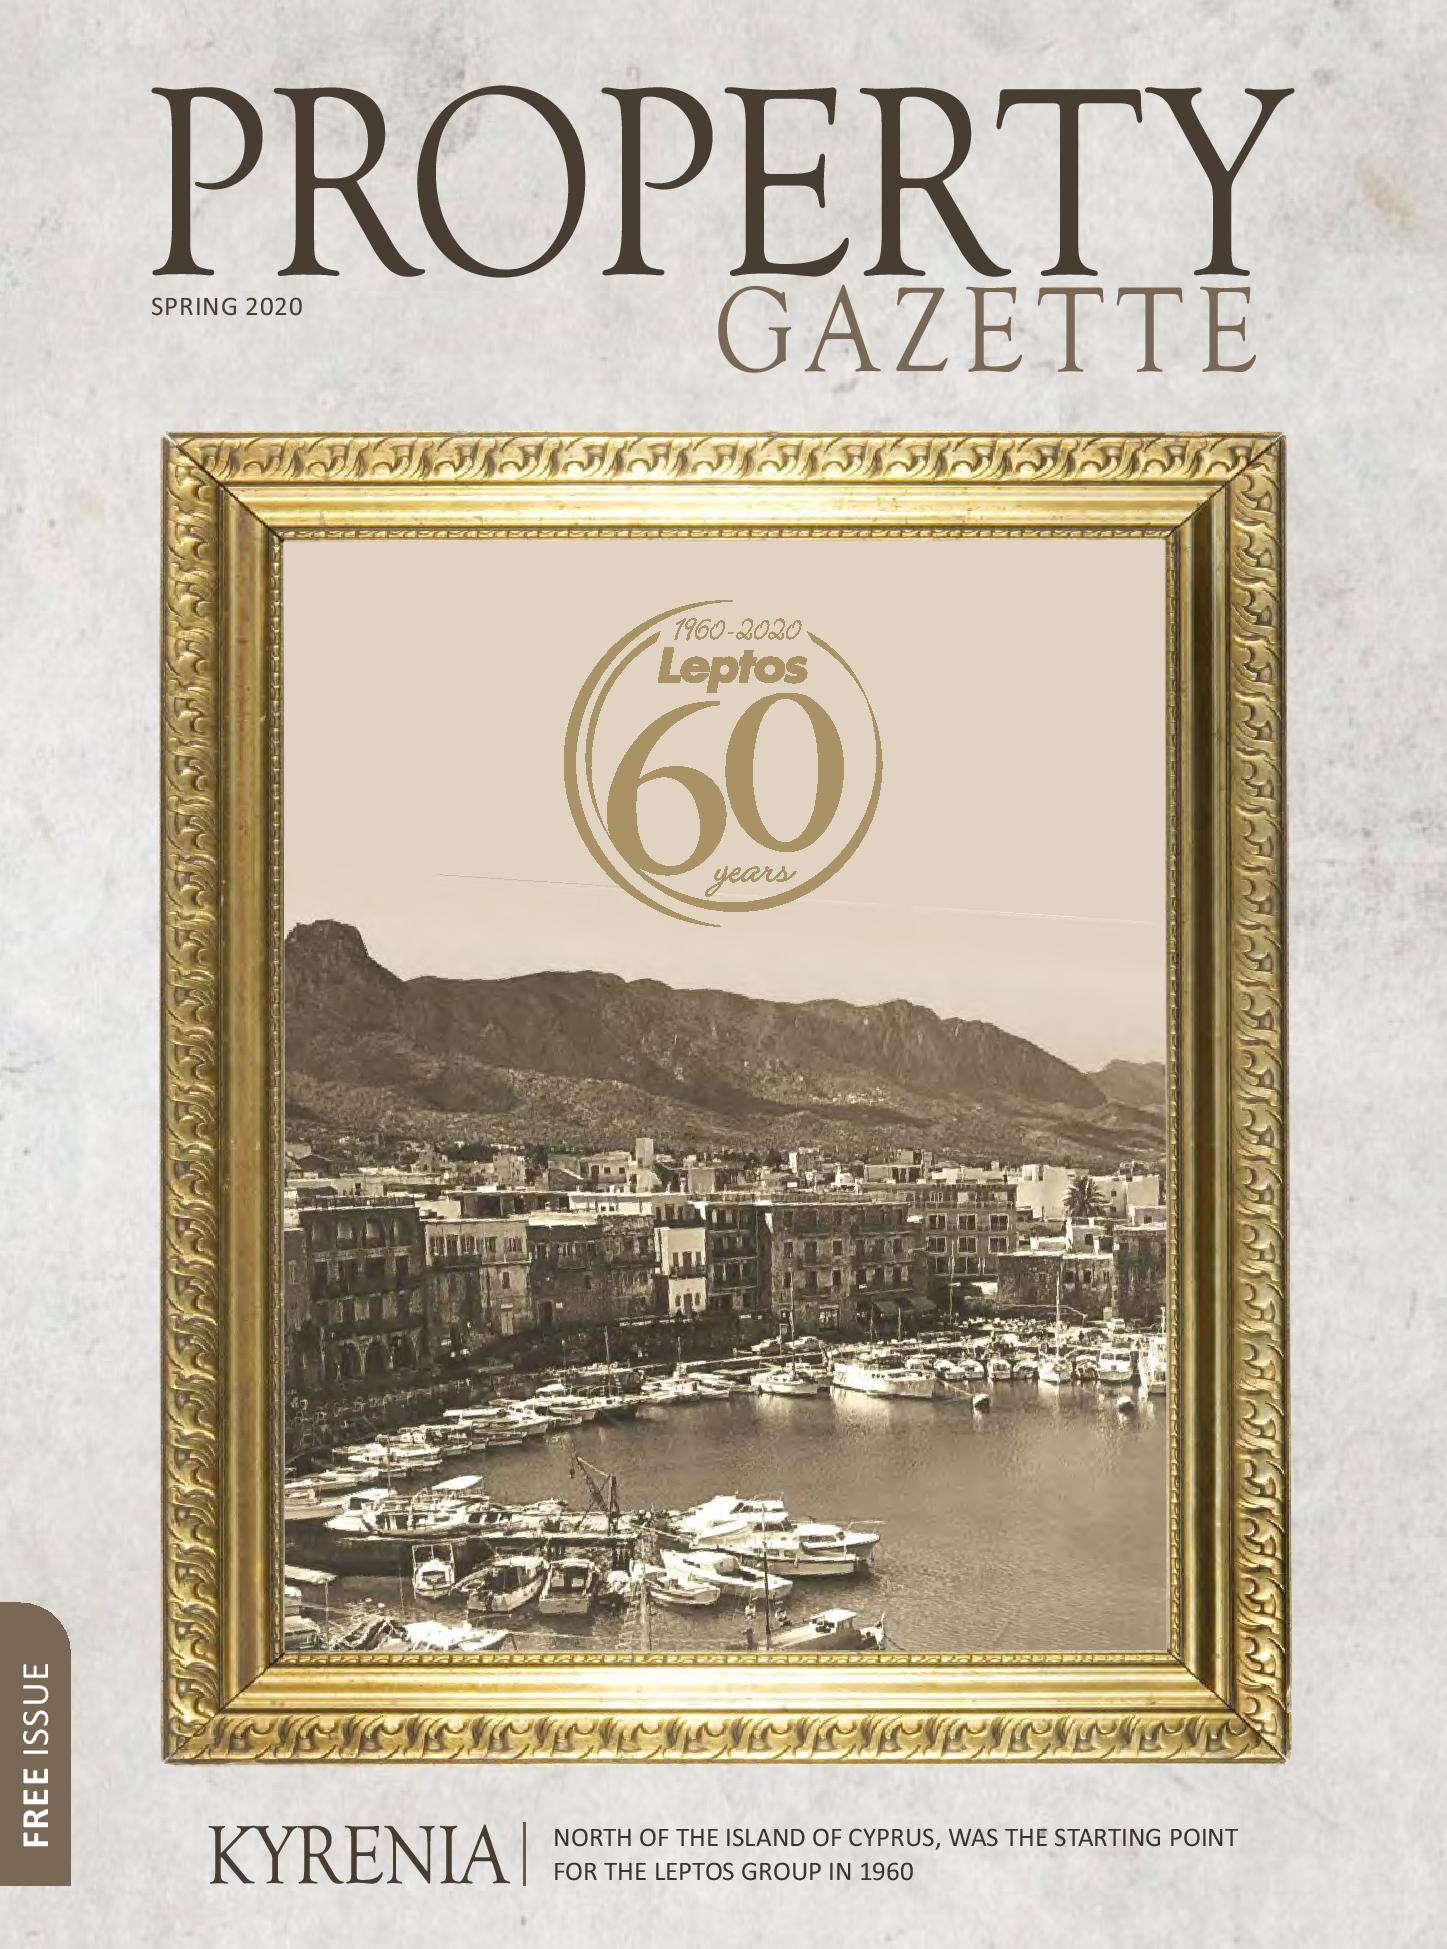 Leptos Estates Property Gazette Spring 2020